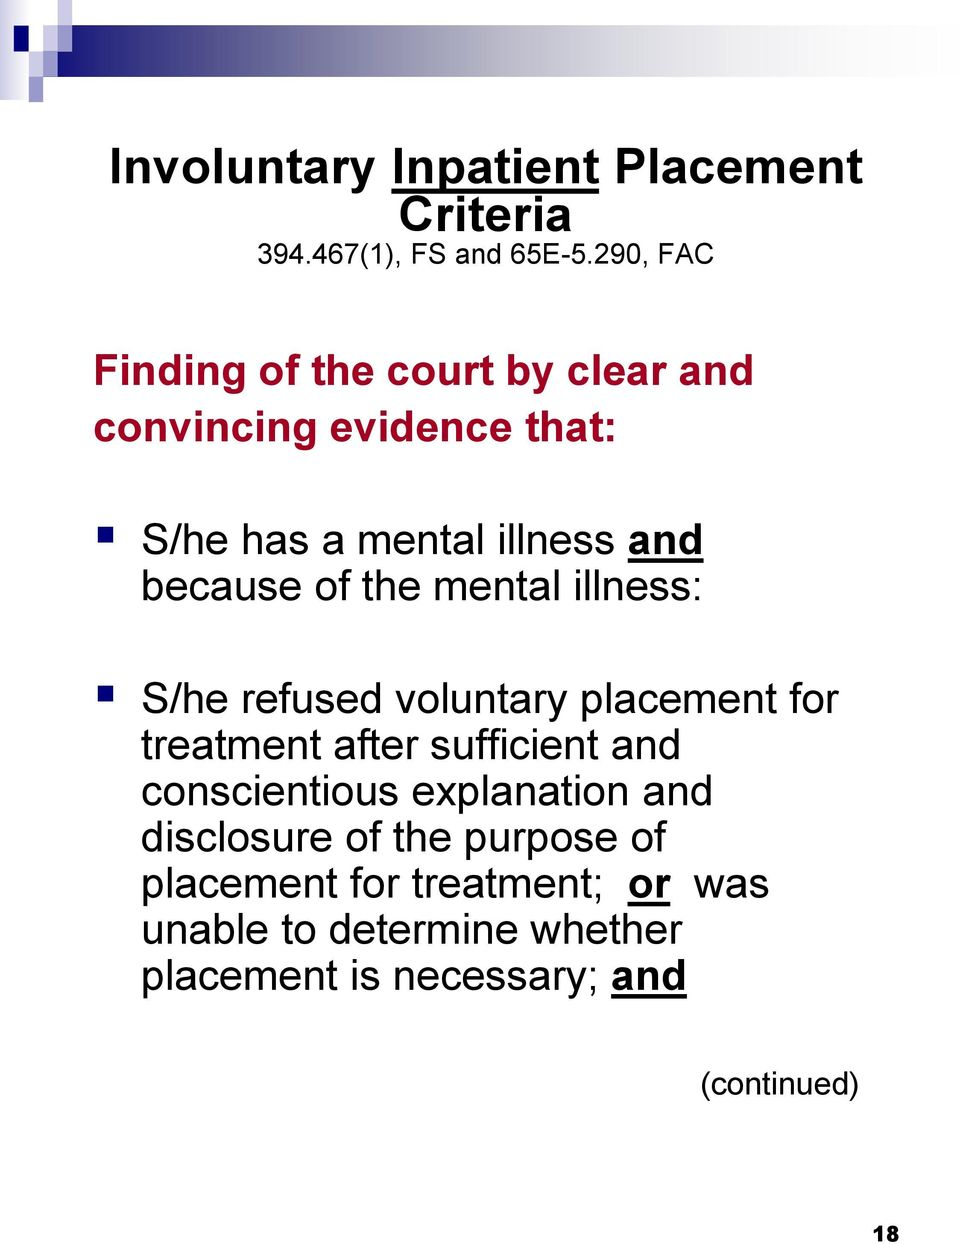 of the mental illness: S/he refused voluntary placement for treatment after sufficient and conscientious